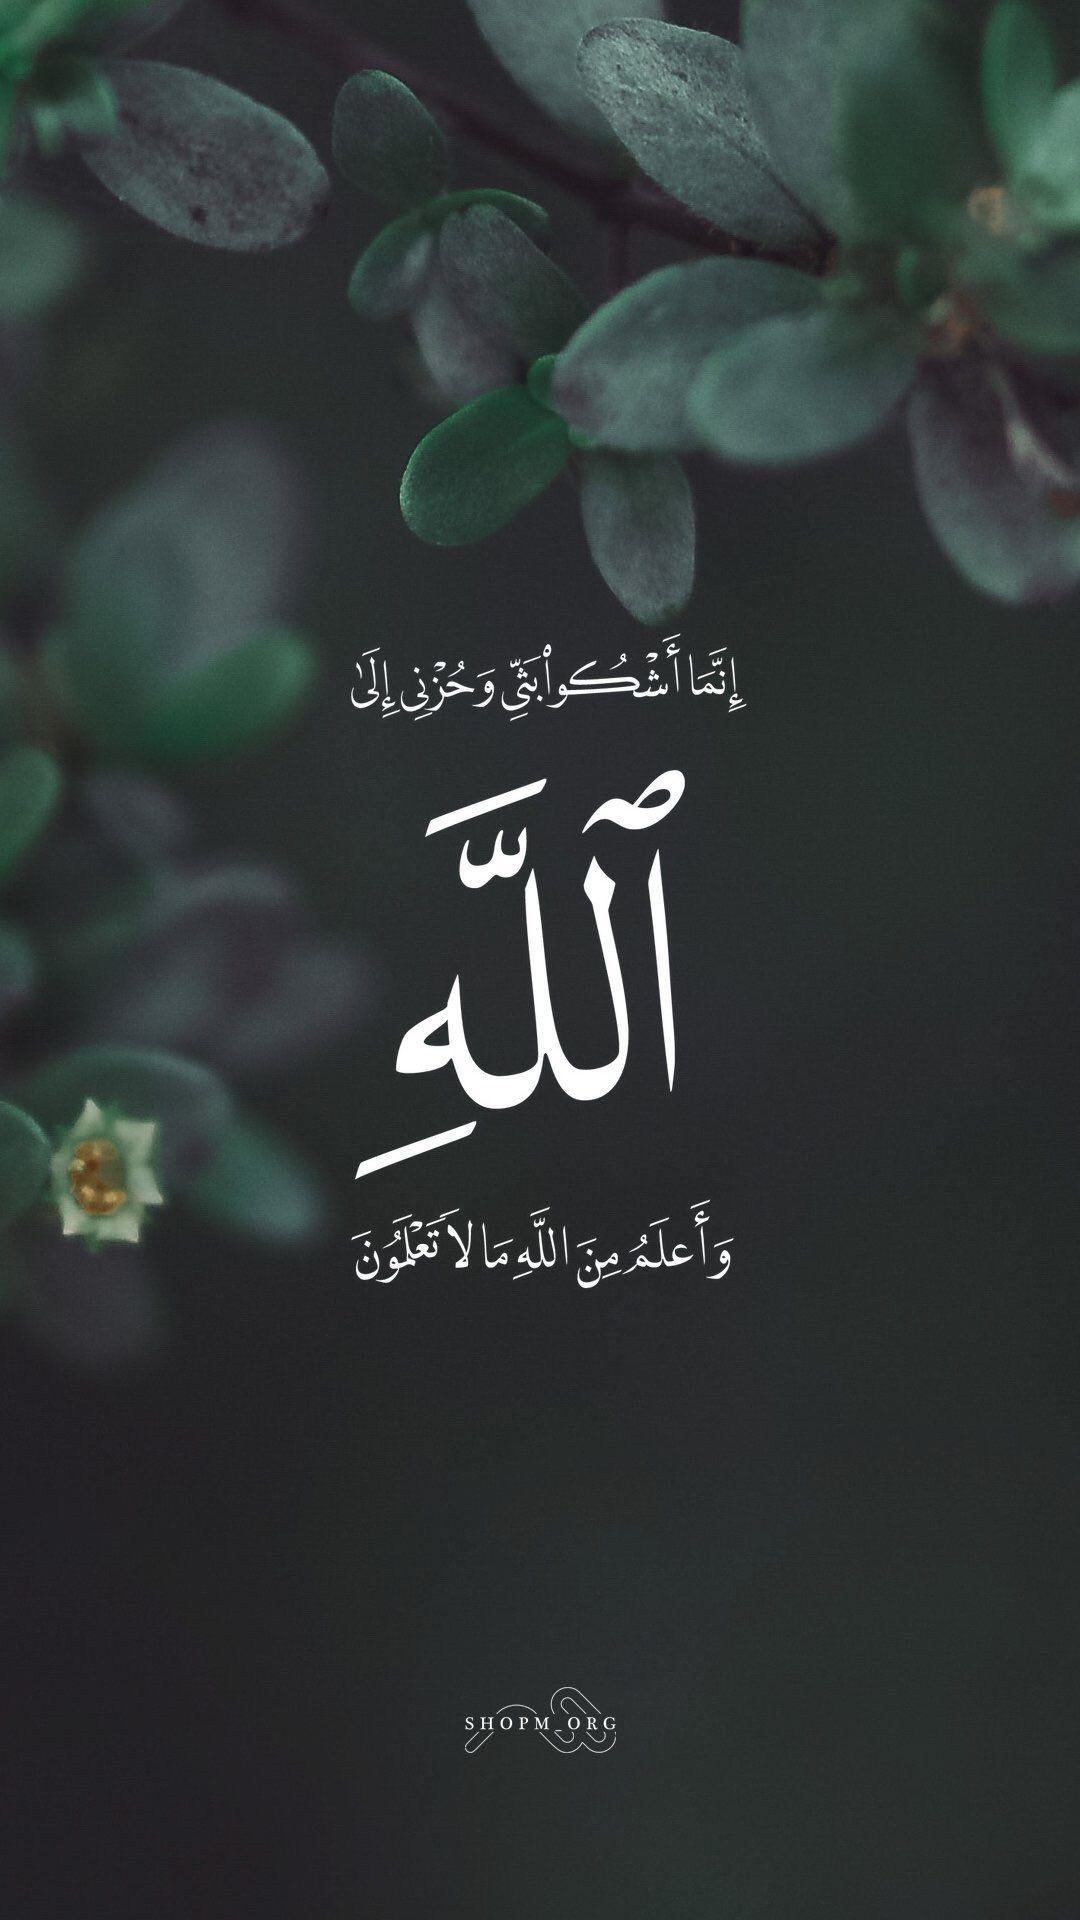 Surah Yusuf 12:86 ~~ He said, I only complain of my